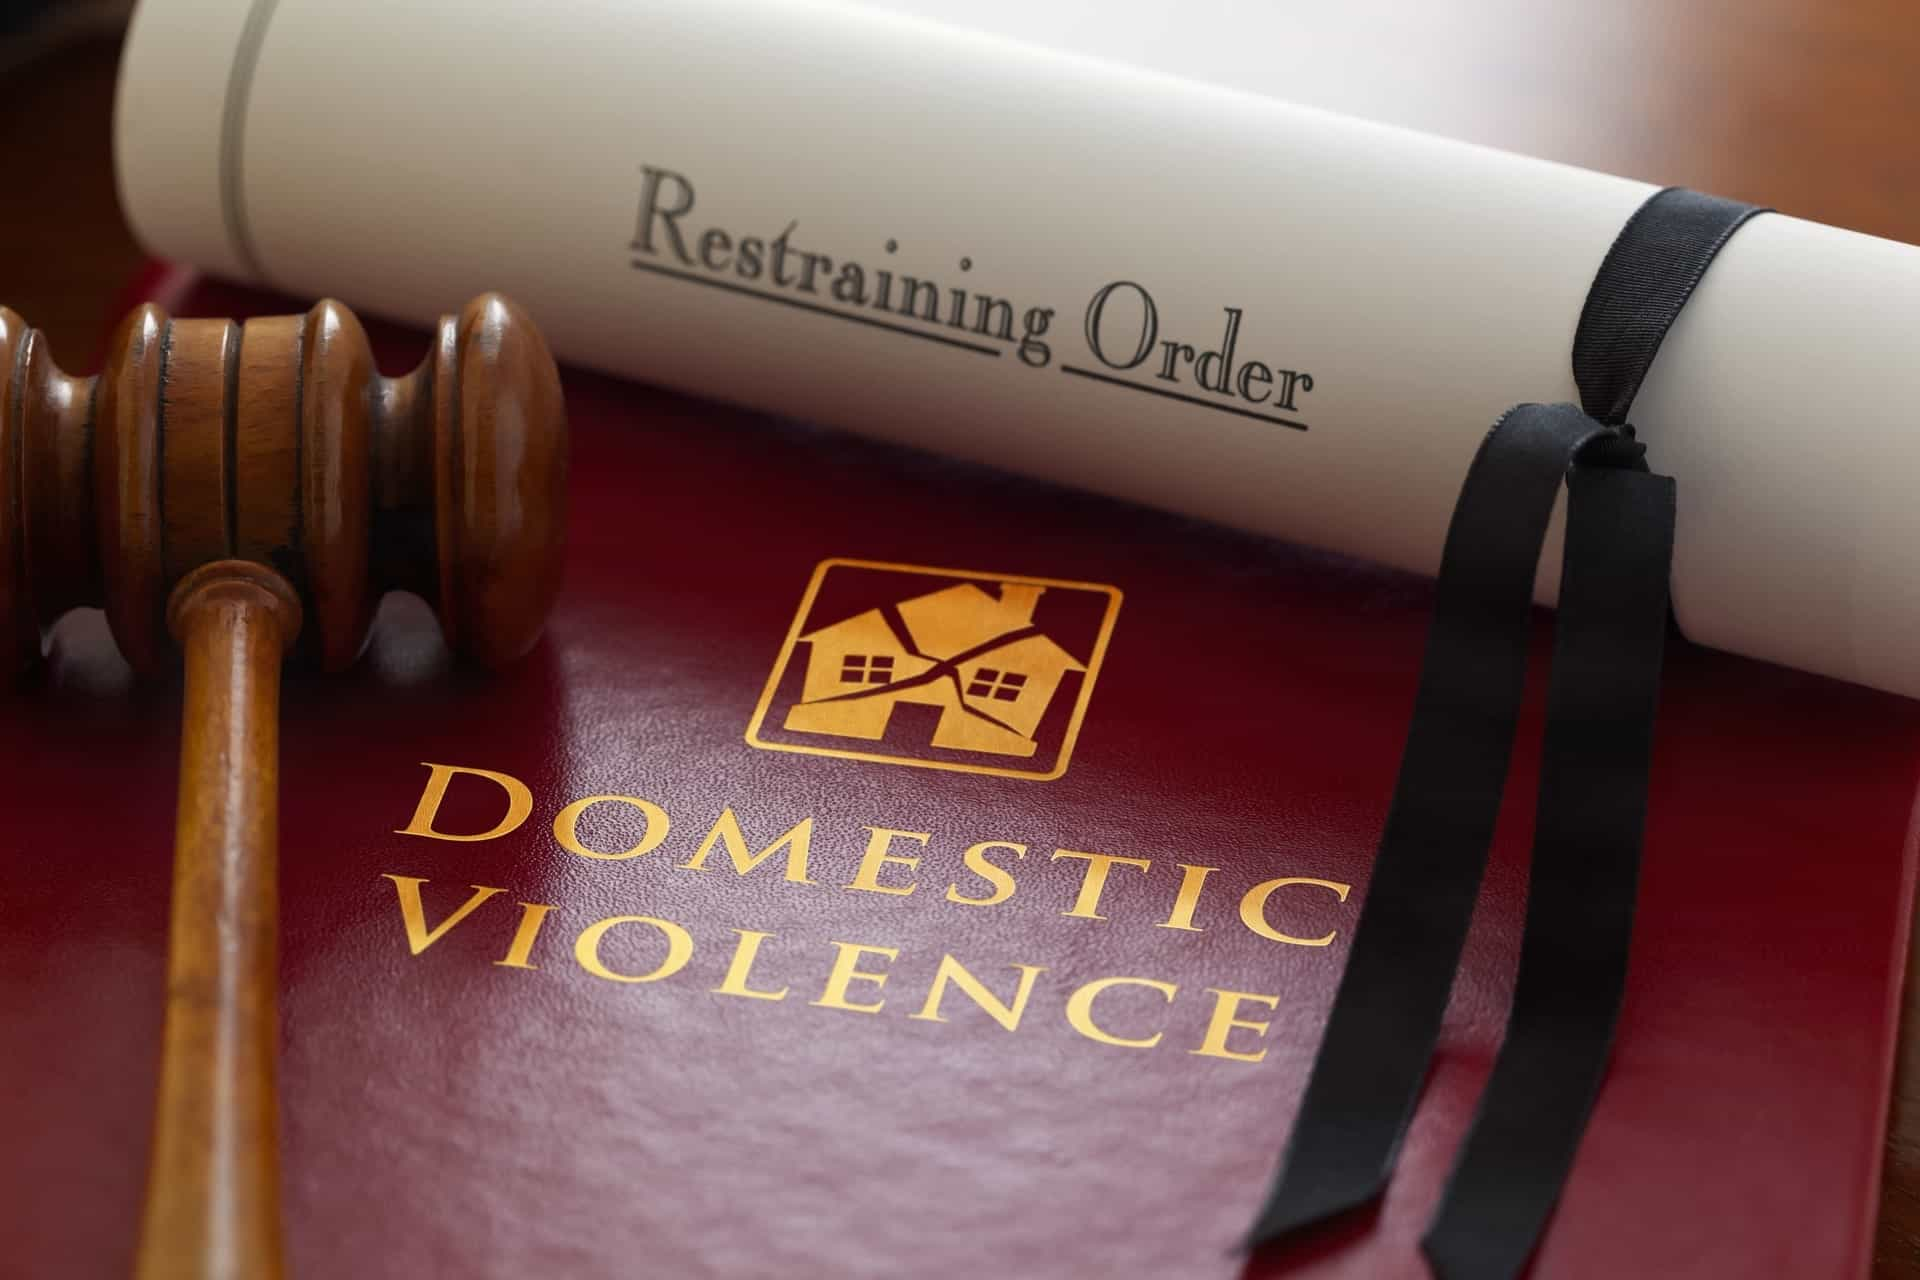 evidence log for restraining order or personal protection